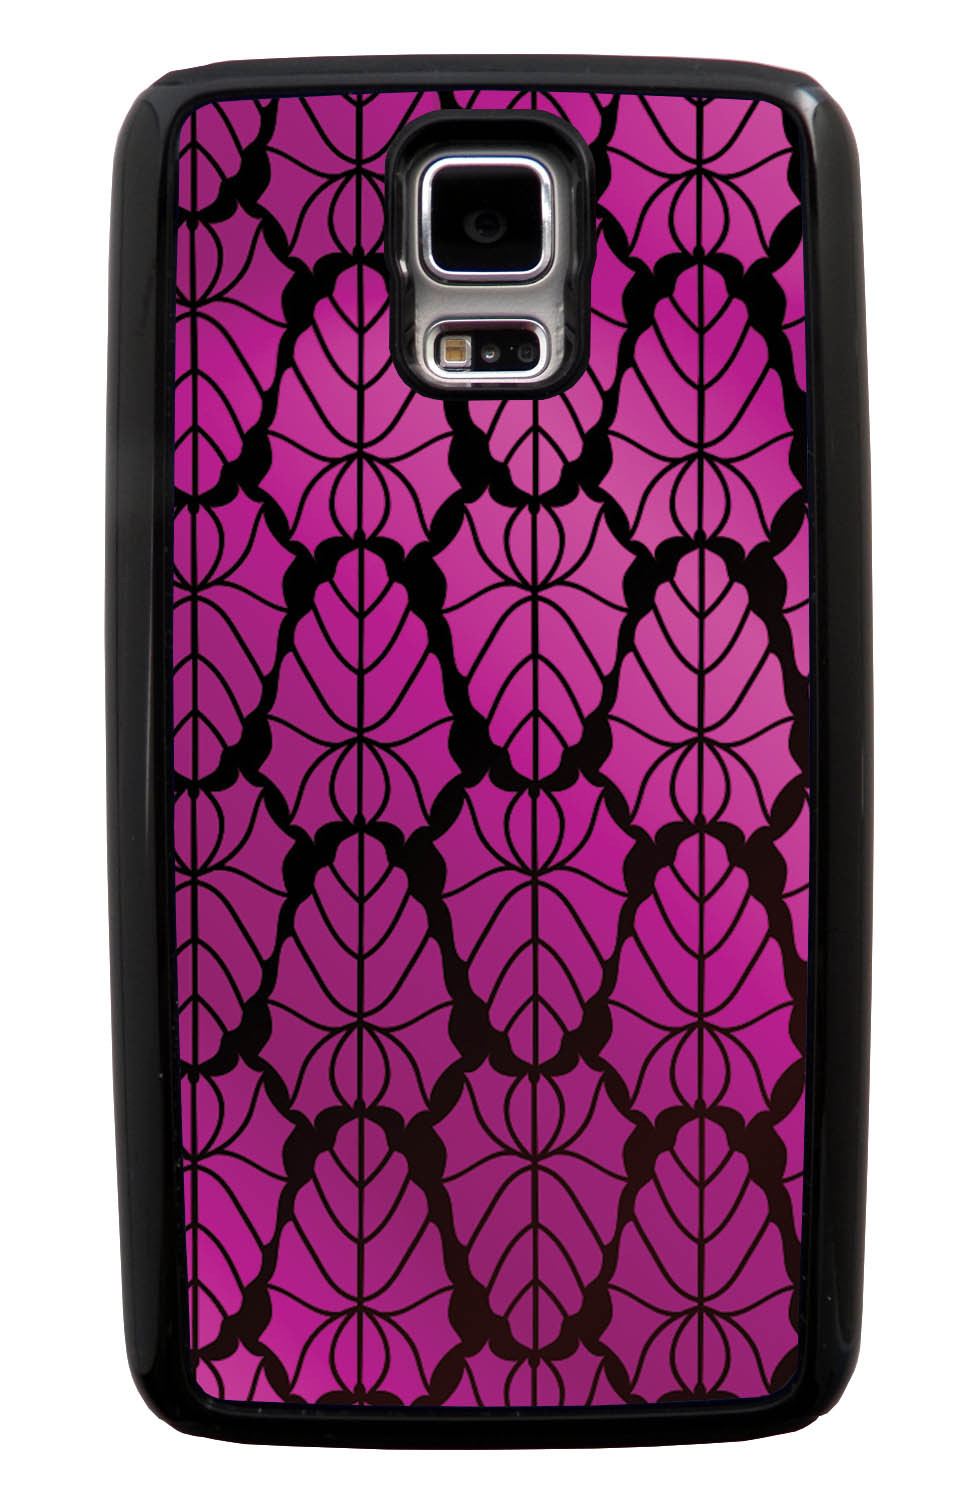 Samsung Galaxy S5 / SV Pink Case - Purple to Pink Leaves - Fall And Winter - Black Tough Hybrid Case